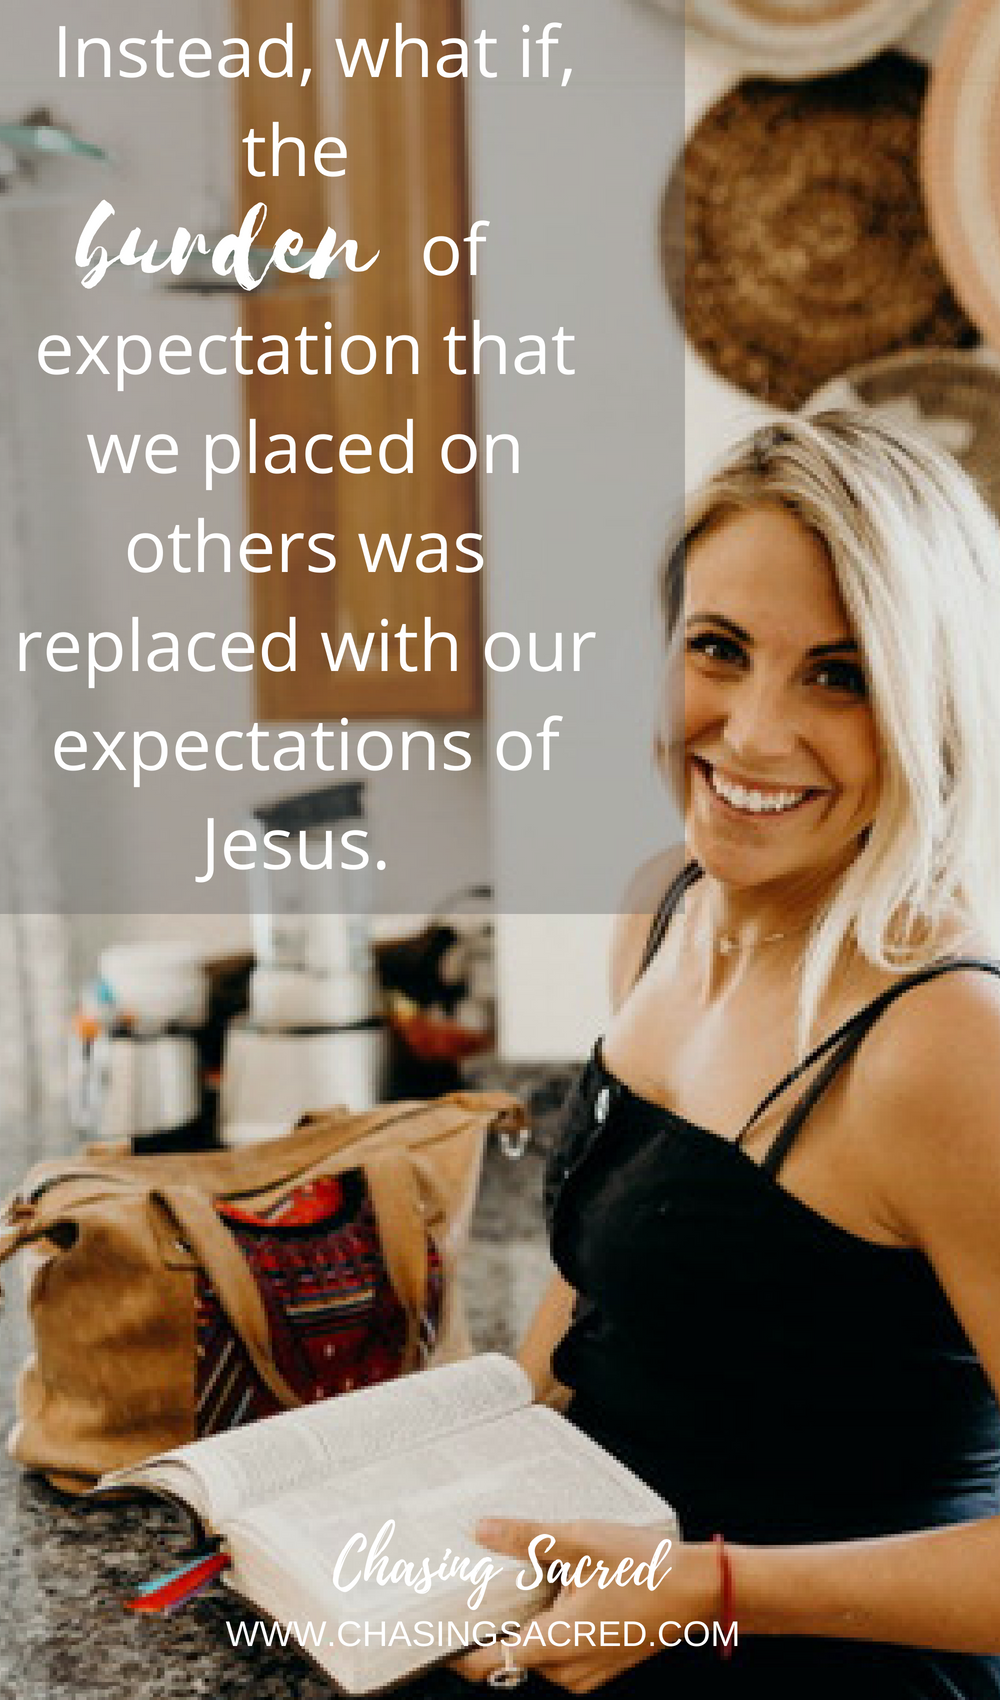 Instead, what if the burden of expectation that we placed on others was replaced with our expectations of Jesus.